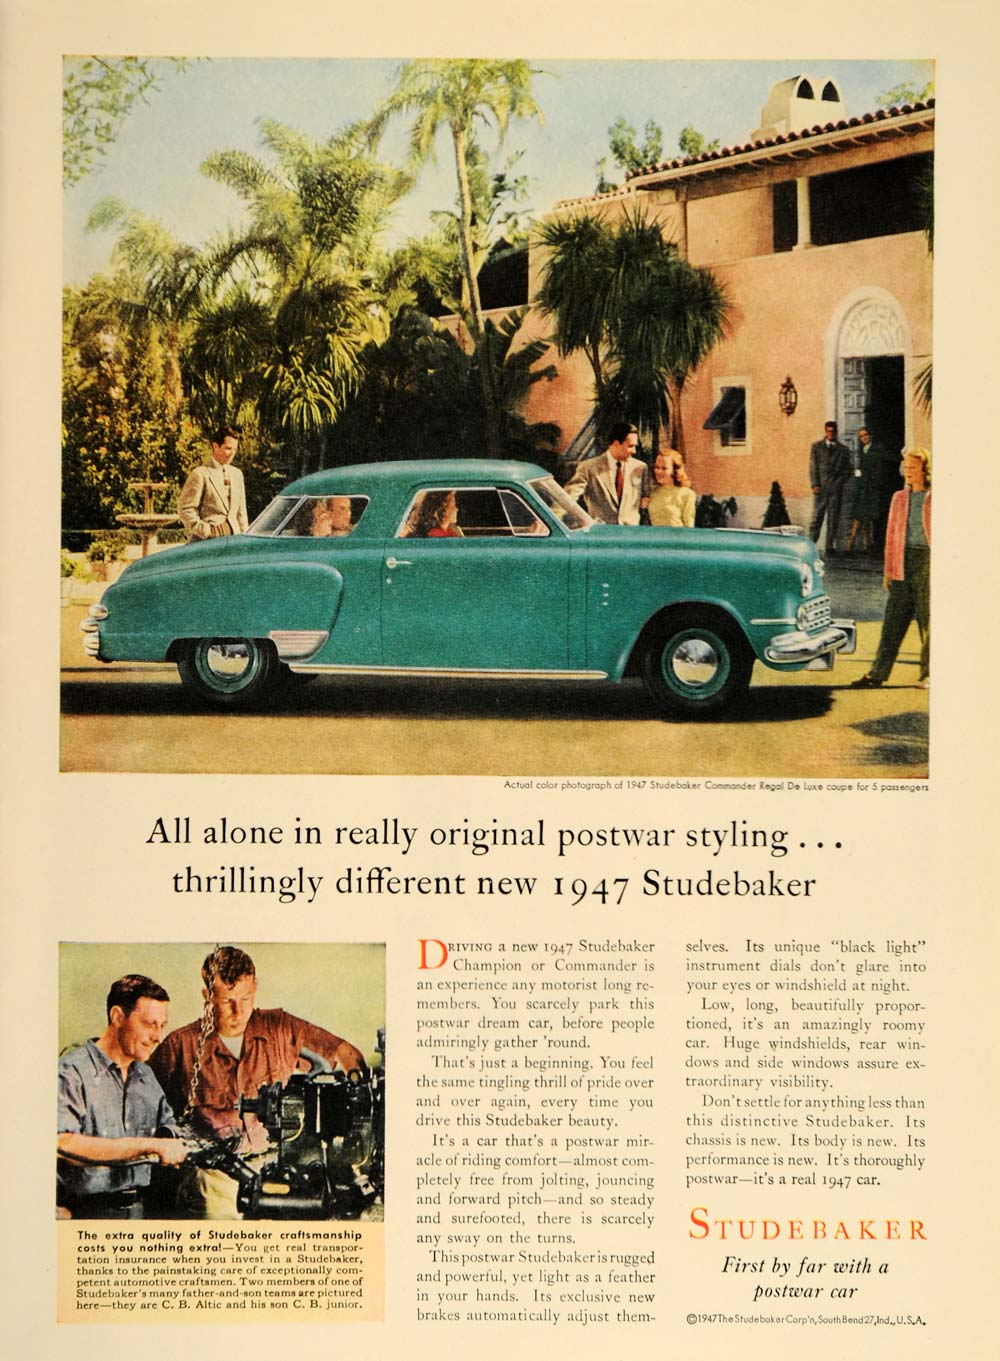 1947 Ad Studebaker Car Commander Regal De Luxe Coupe - ORIGINAL ADVERTISING TM1